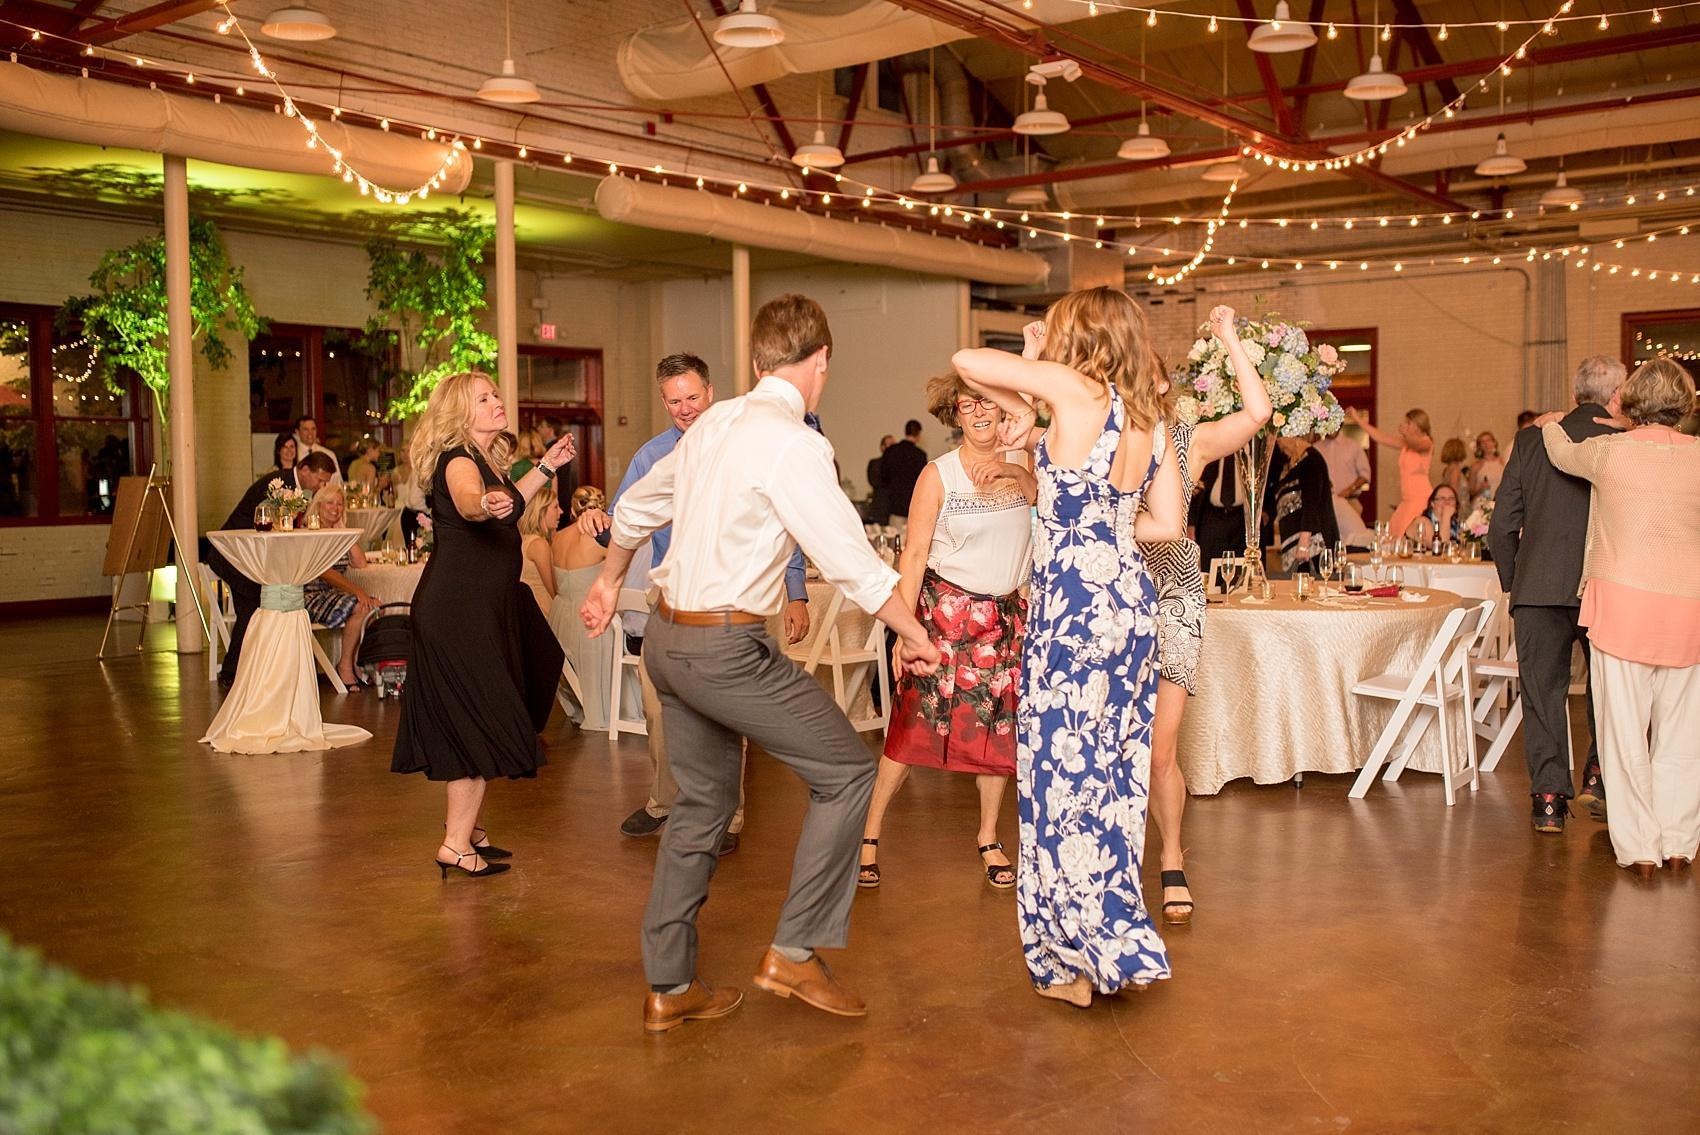 Mikkel Paige Photography photos of a wedding in downtown Raleigh at Market Hall, North Carolina. Dance floor time!